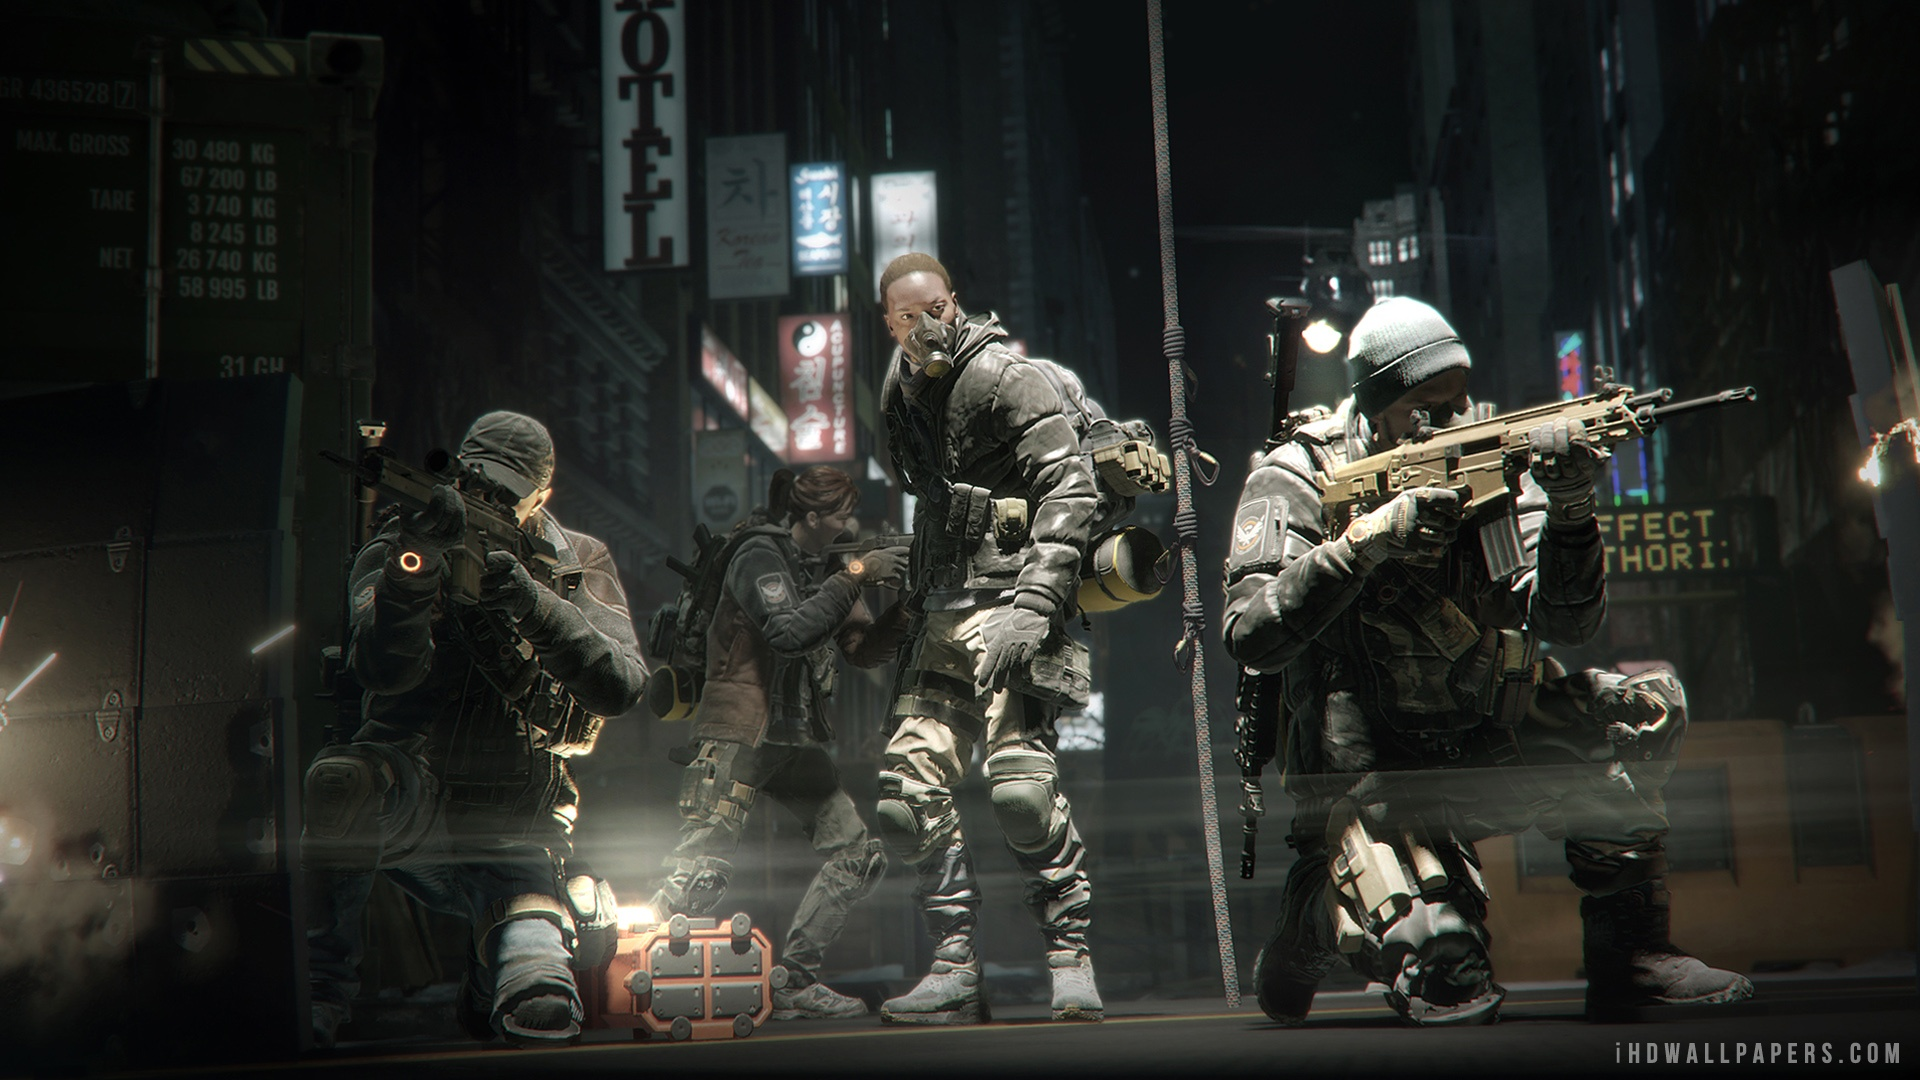 Tom Clancys The Division Team Formation HD Wallpaper   iHD Wallpapers 1920x1080